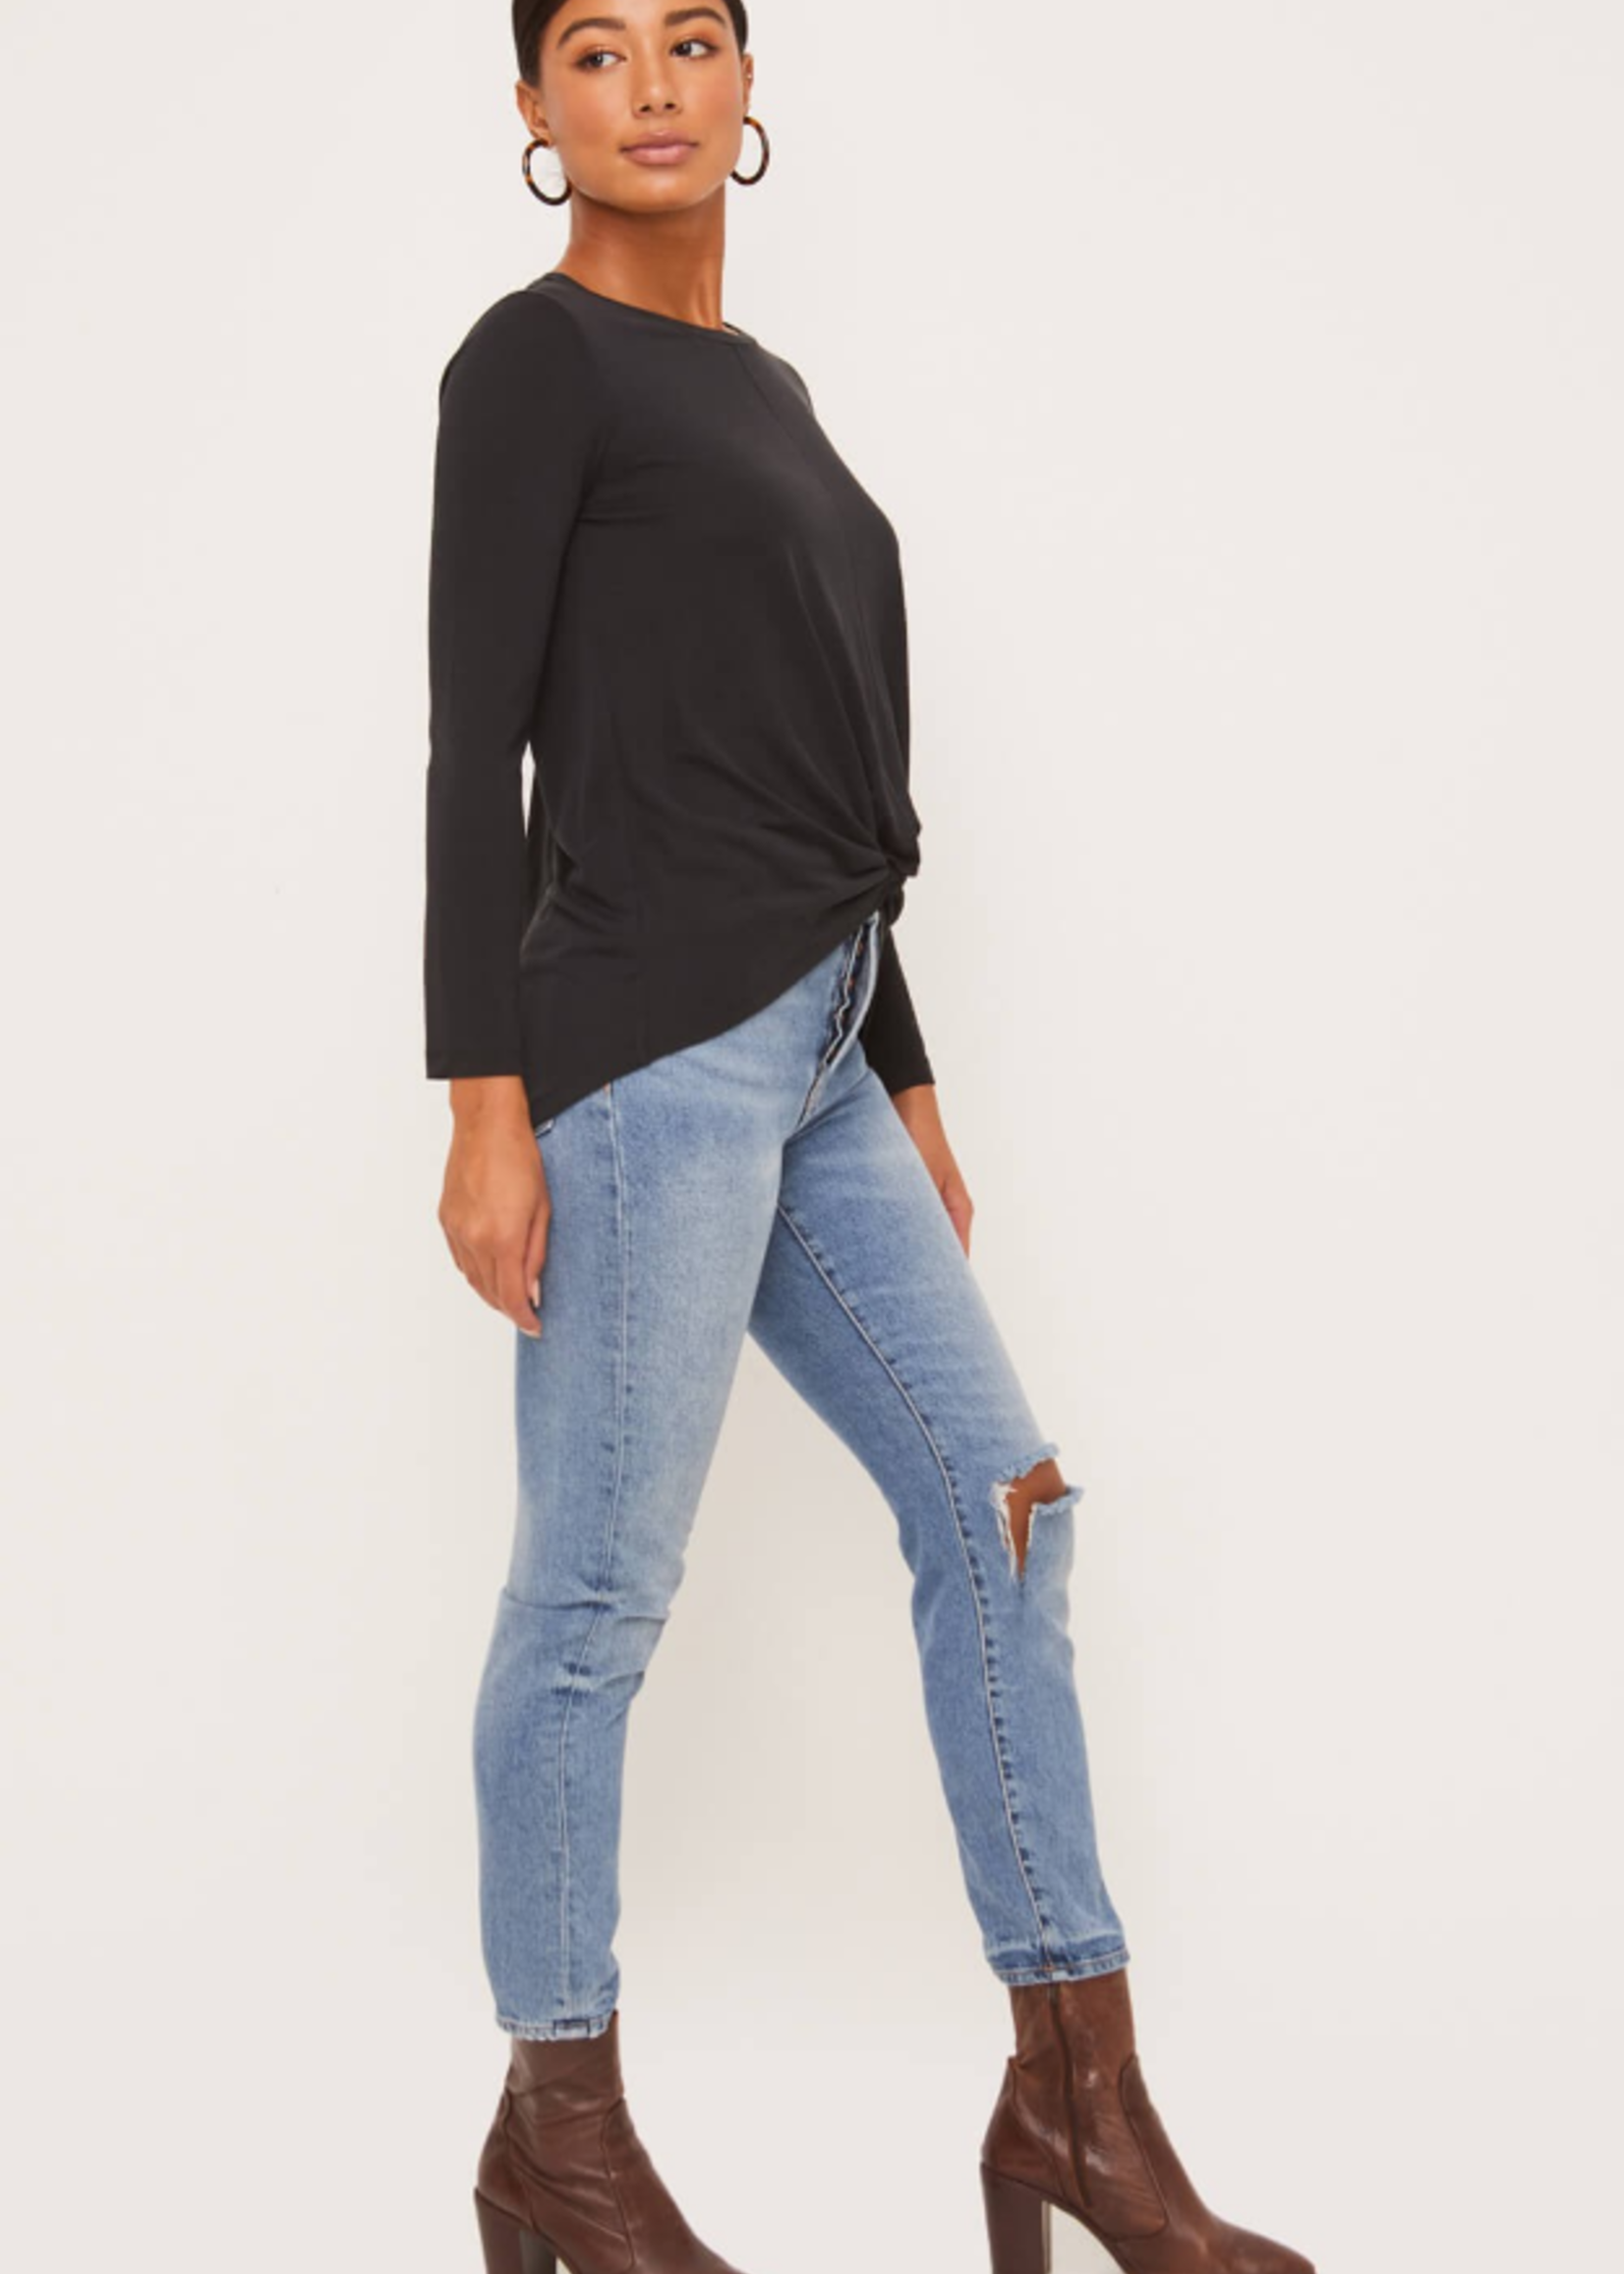 Lush Front Knot Top - Black